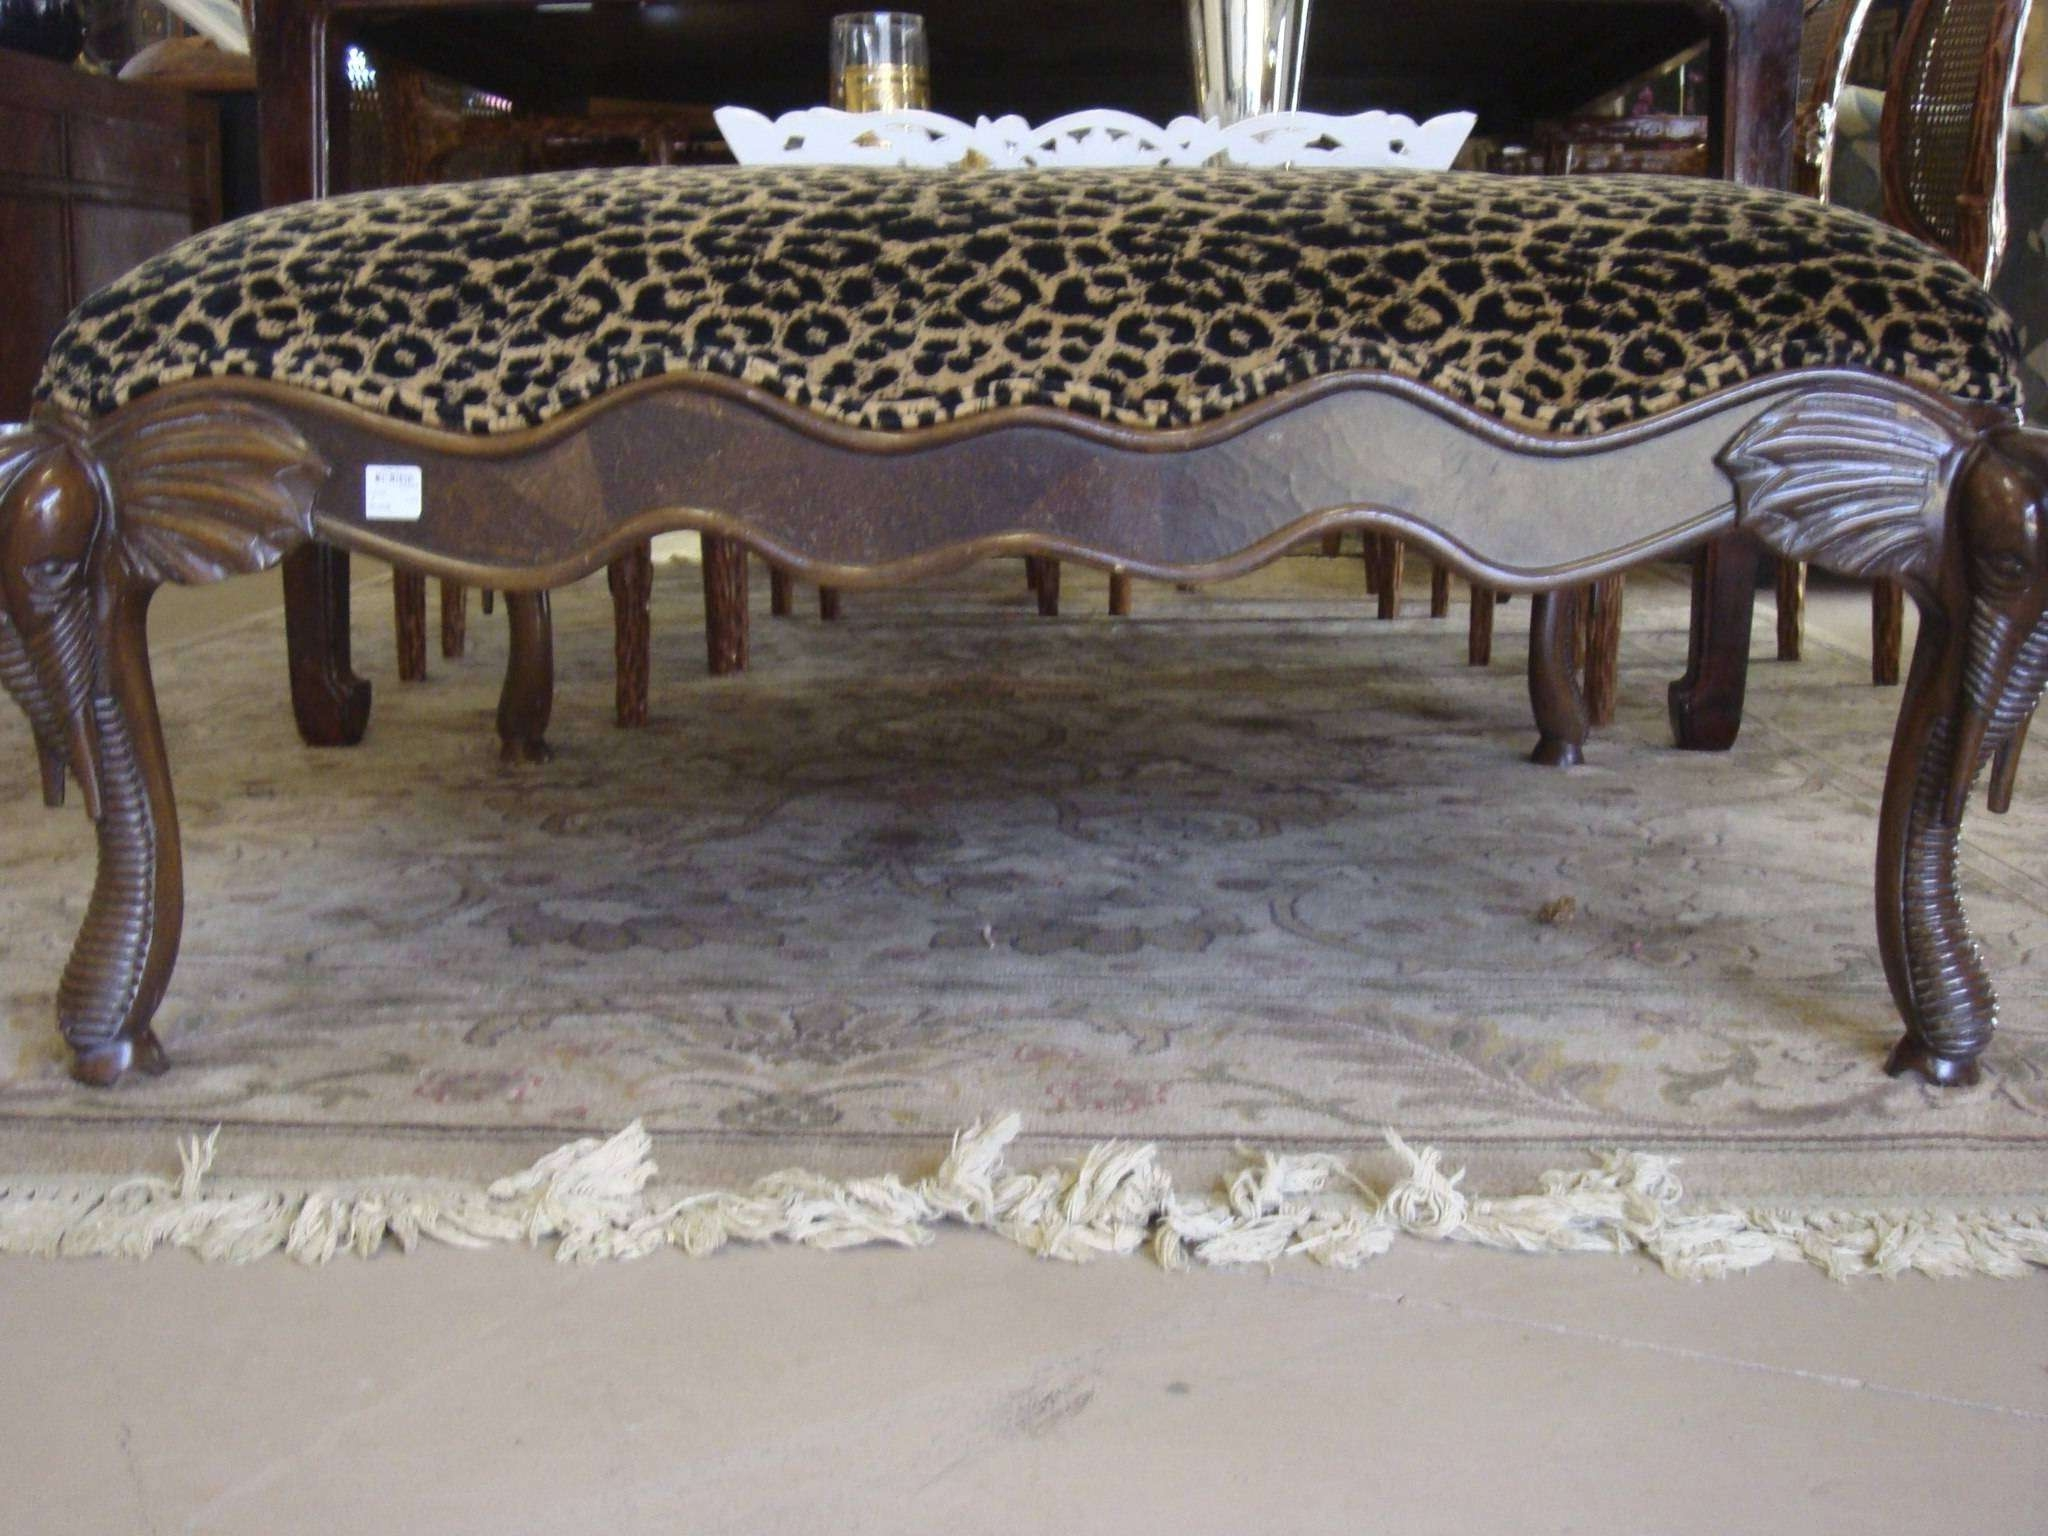 Coffee Table Fresh Wonderful Leopard Print Ottomans Storage 20563 Regarding Current Animal Print Ottoman Coffee Tables (View 7 of 20)